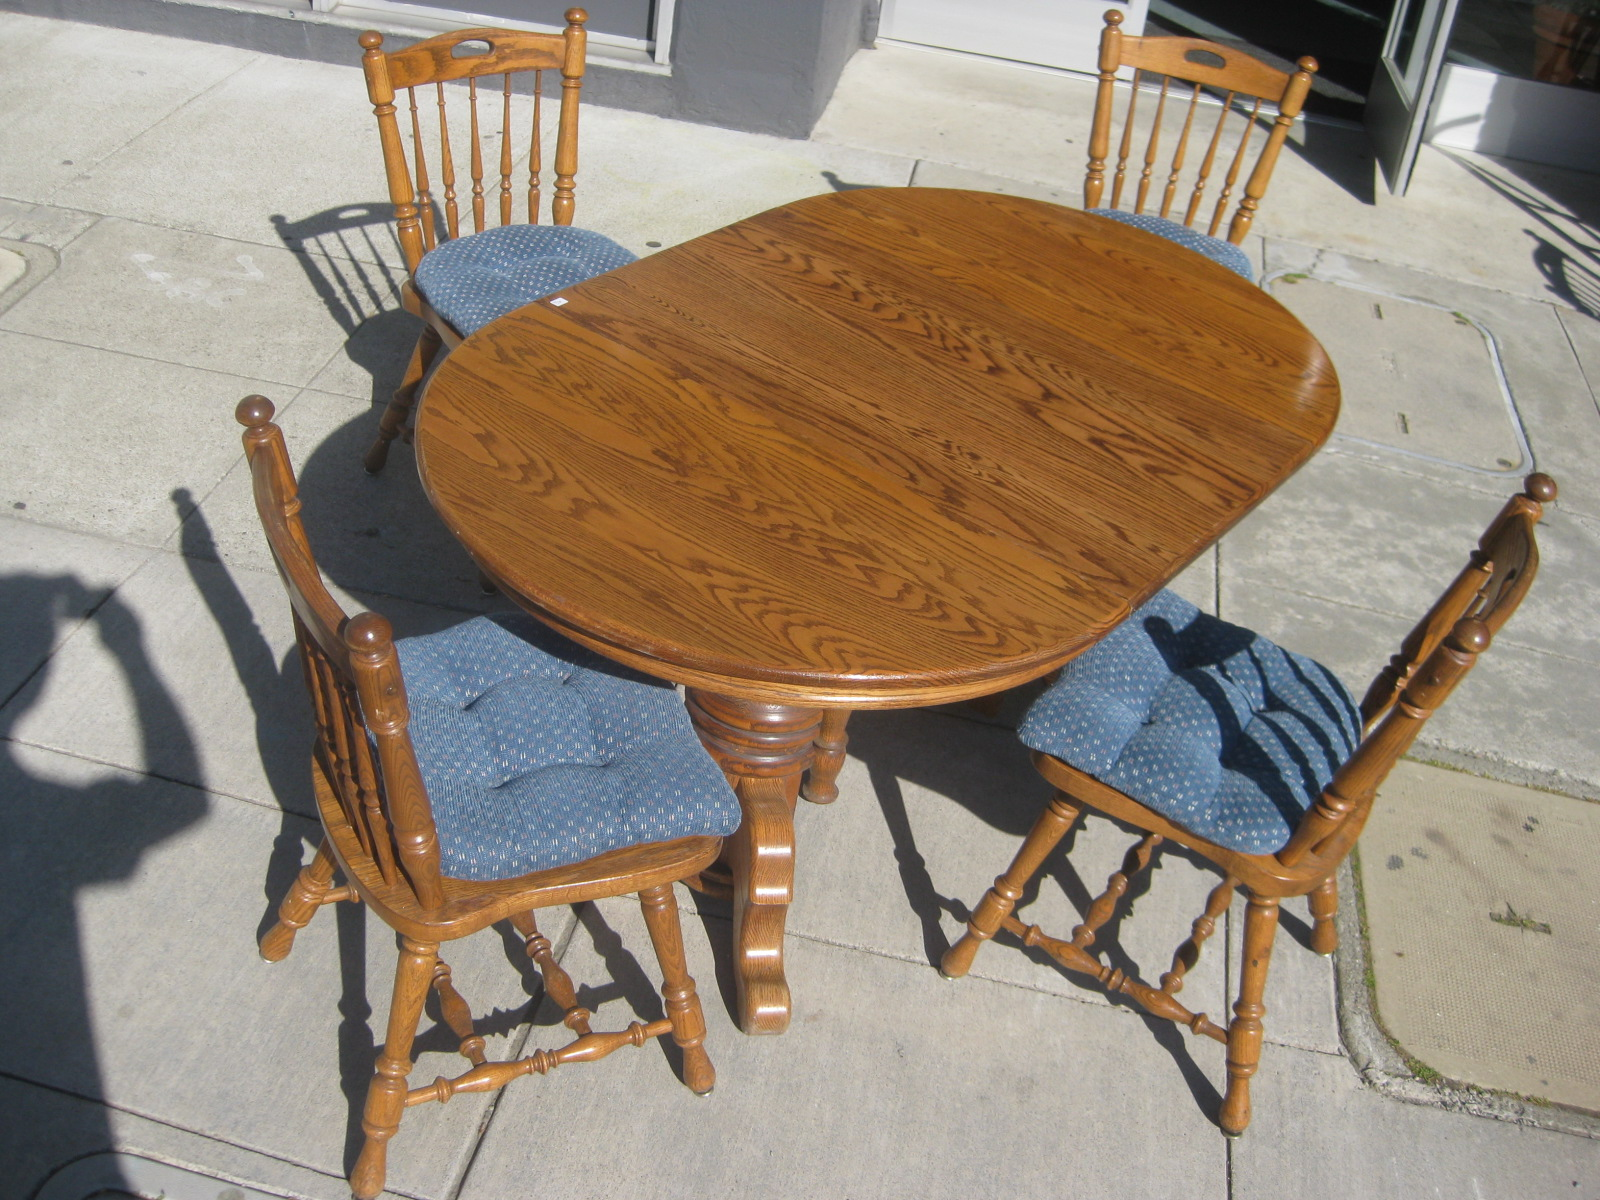 UHURU FURNITURE & COLLECTIBLES: SOLD - Oak Dining Table + 3 Leaves